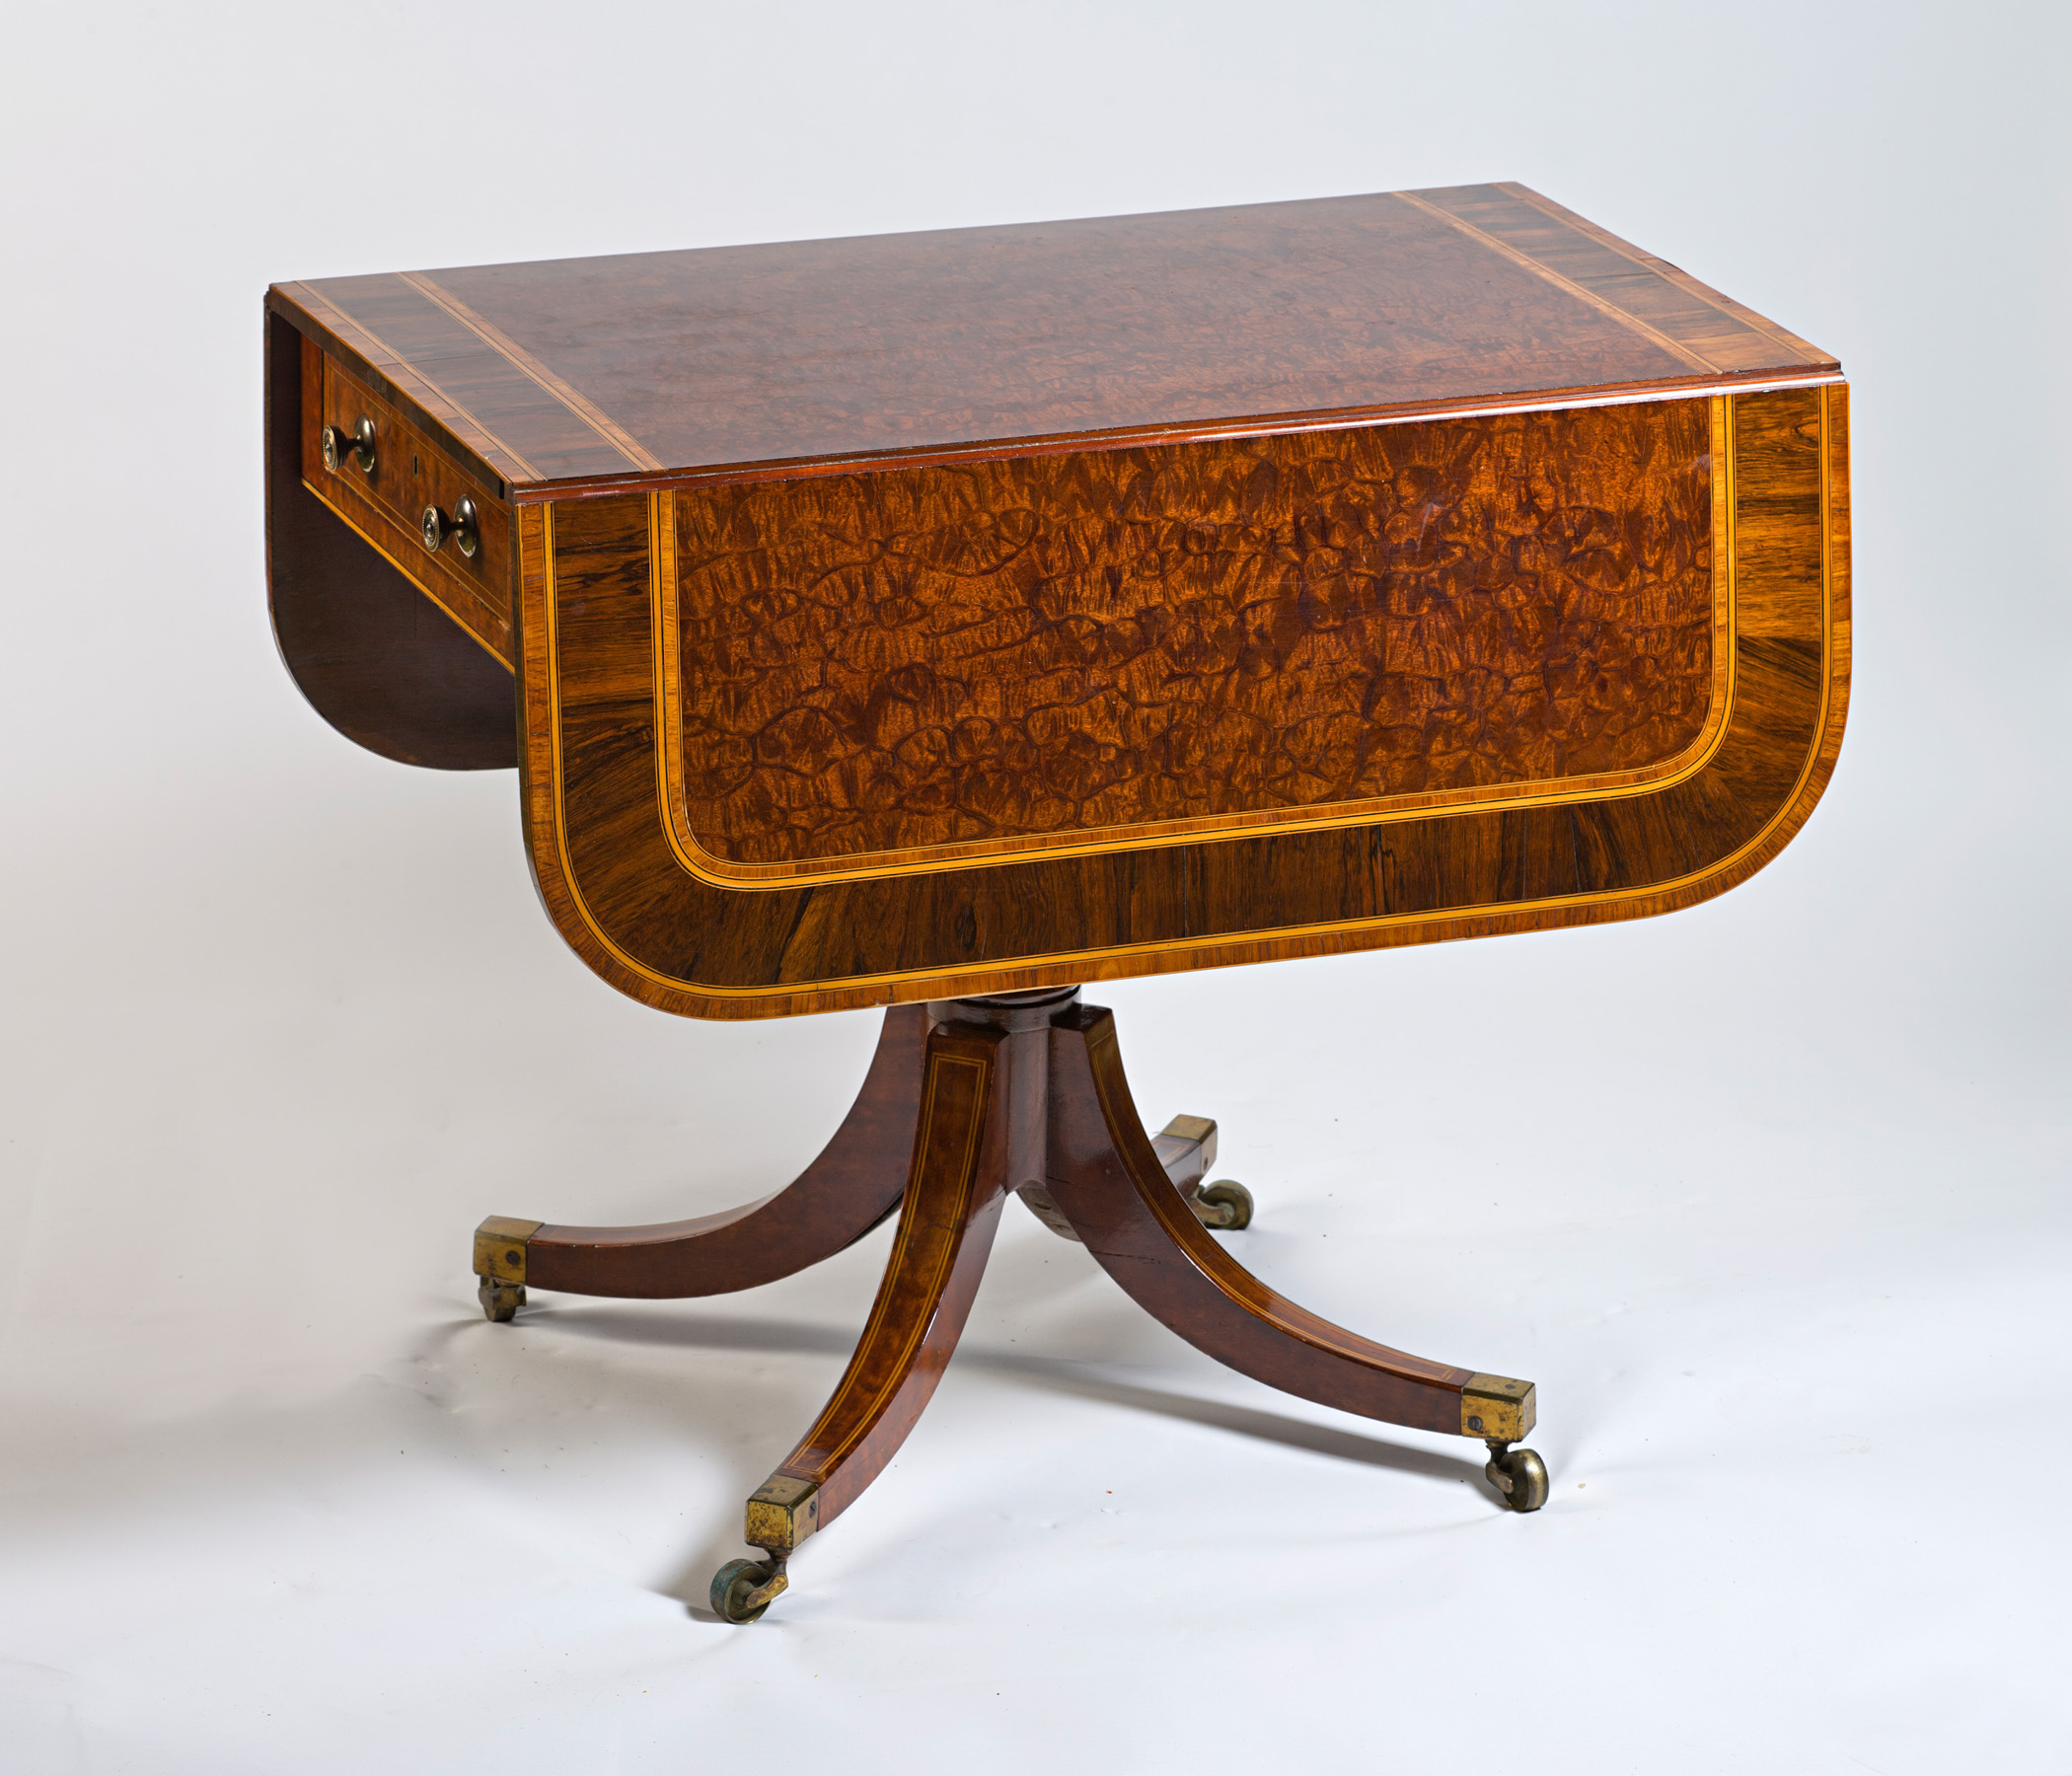 A George III crocodile mahogany Pembroke table, circa 1800.